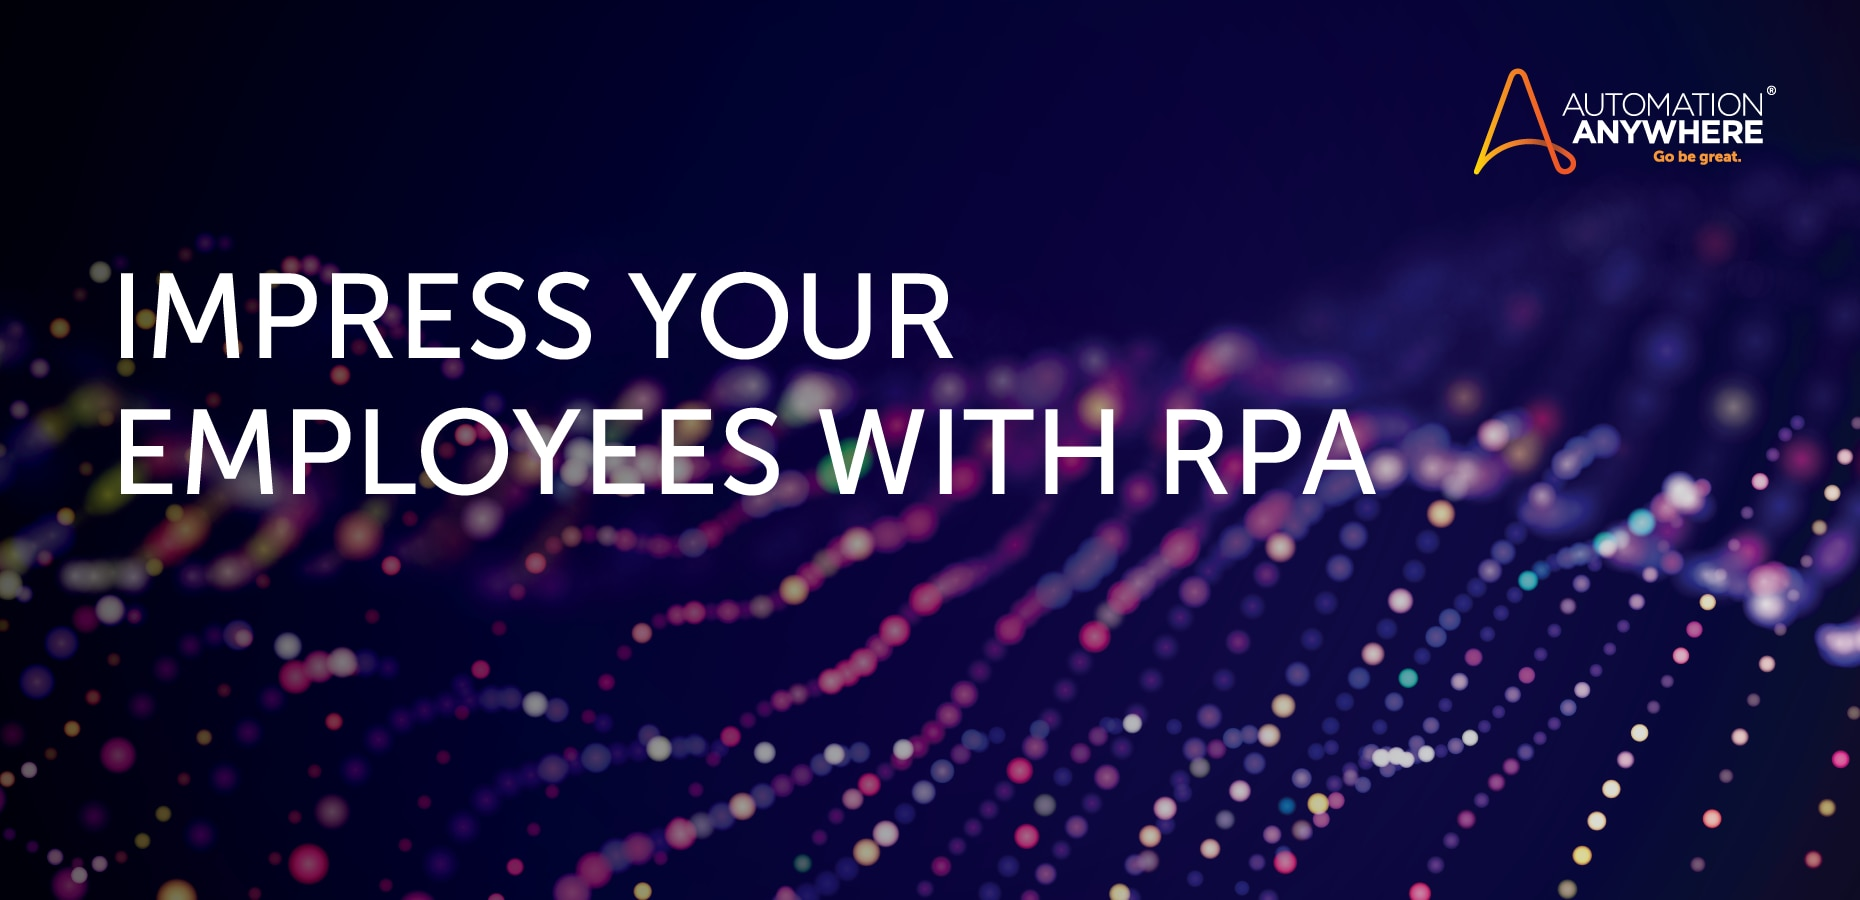 RPA Tools - More Than Automation